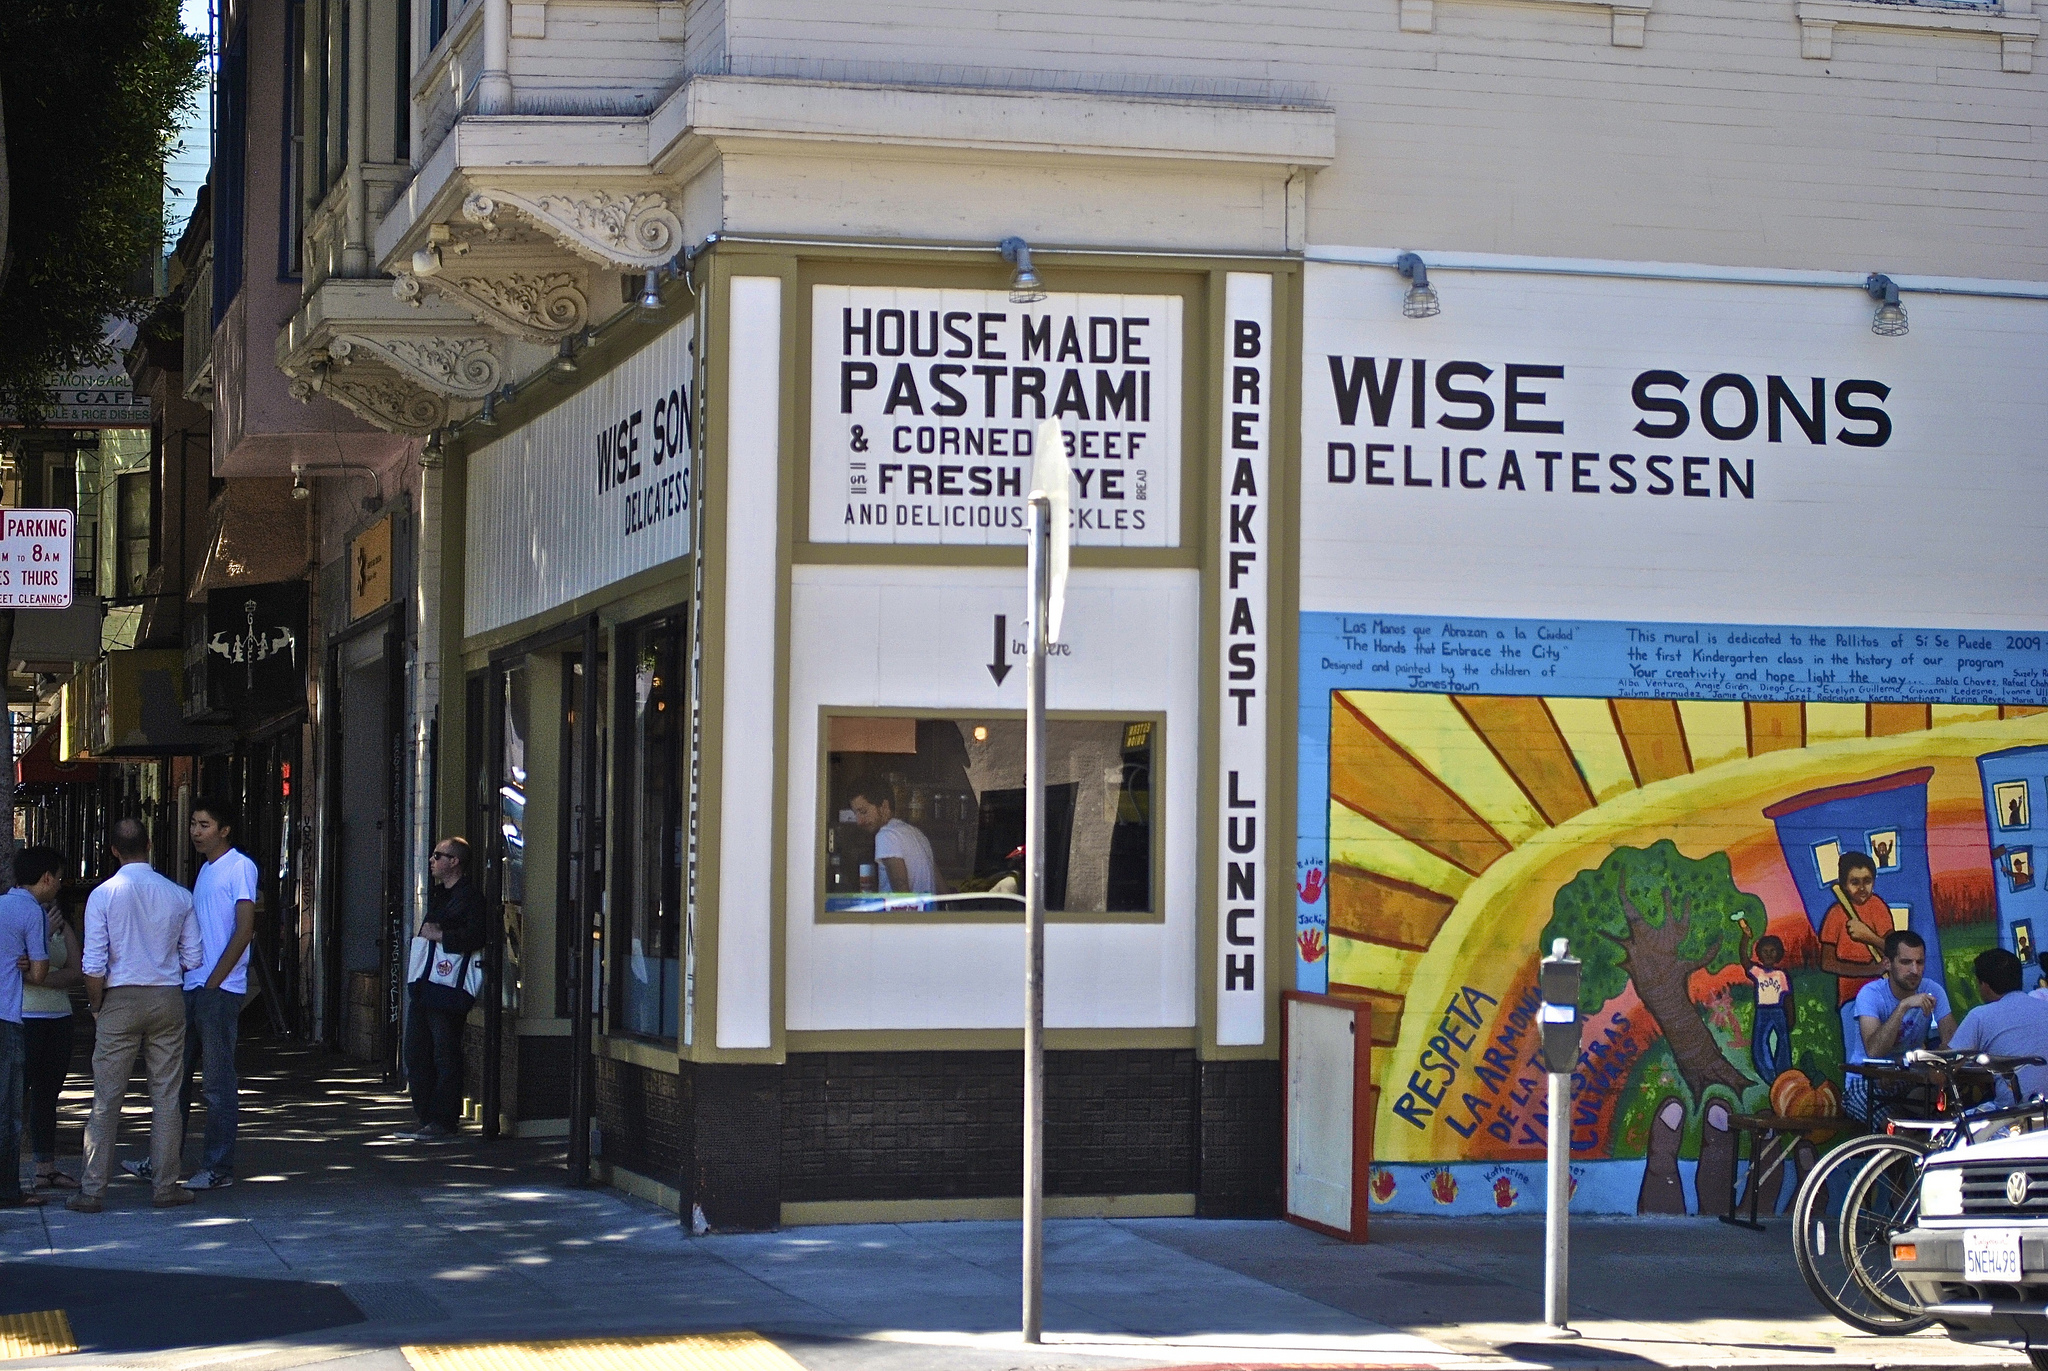 Exterior of Wise Sons Delicatessen with outdoor dining and a line out front